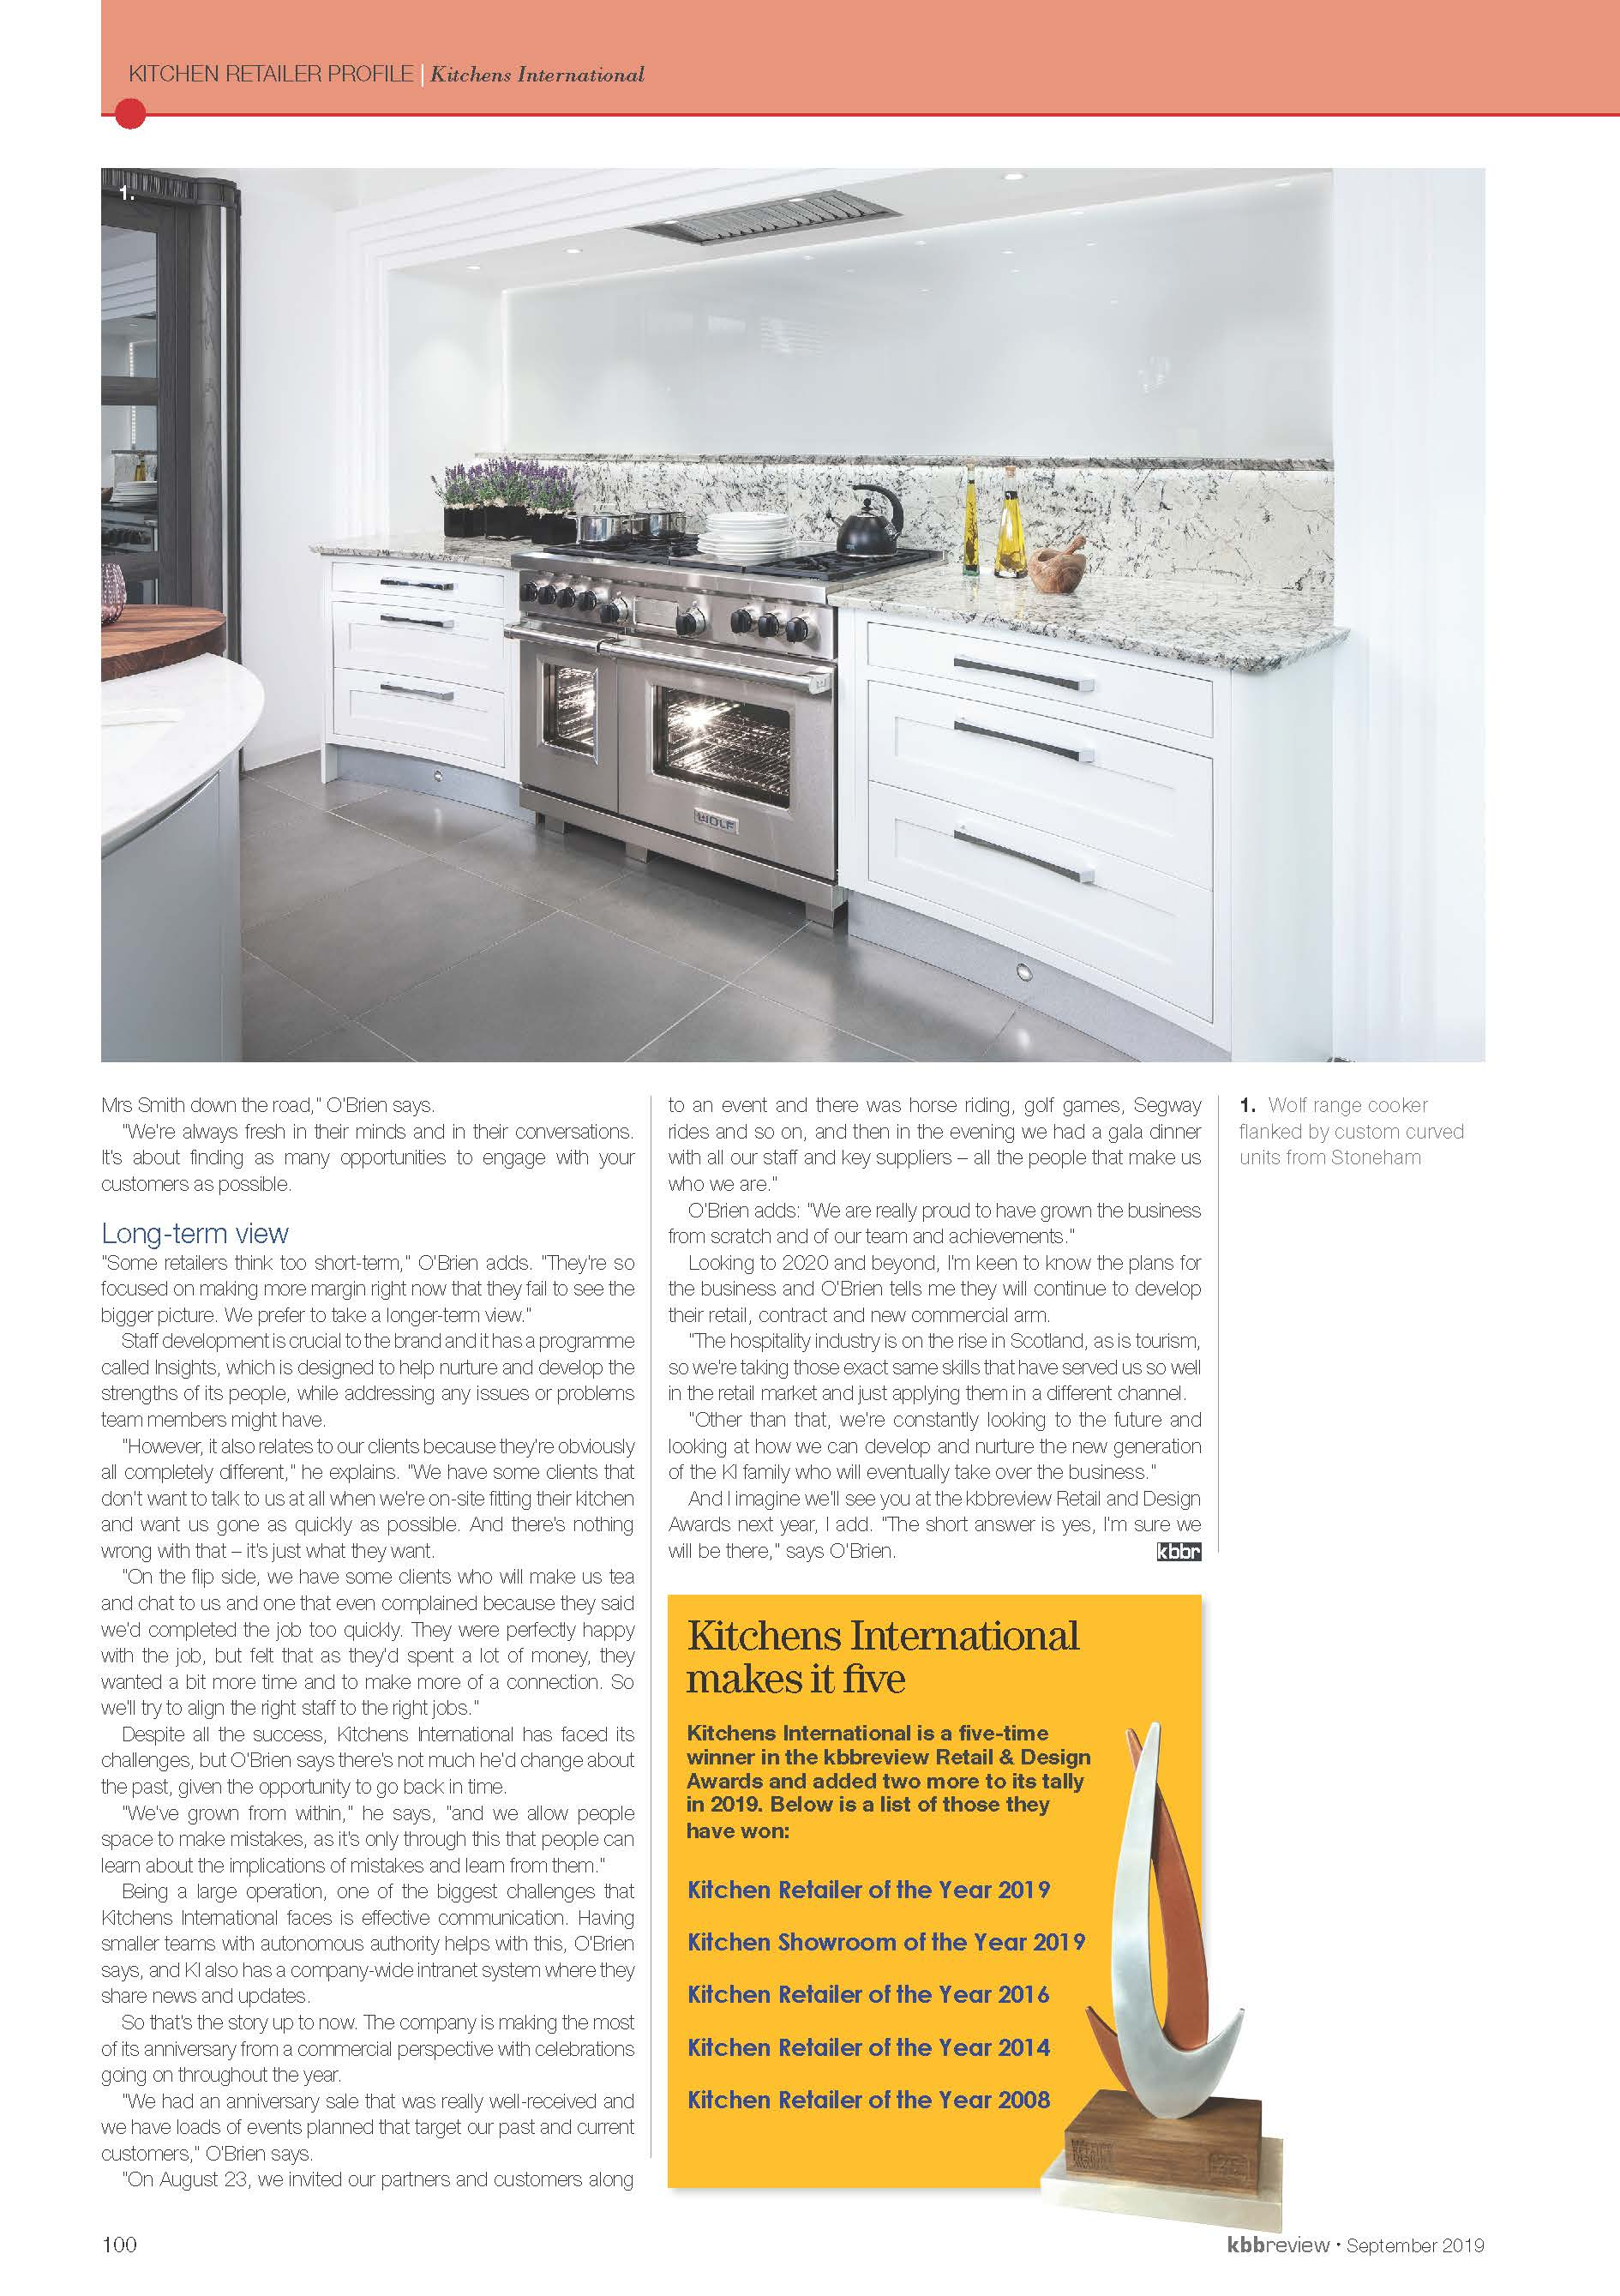 095-100 K Ret Profile-Kitchens International Sep19-KBBR Page 4